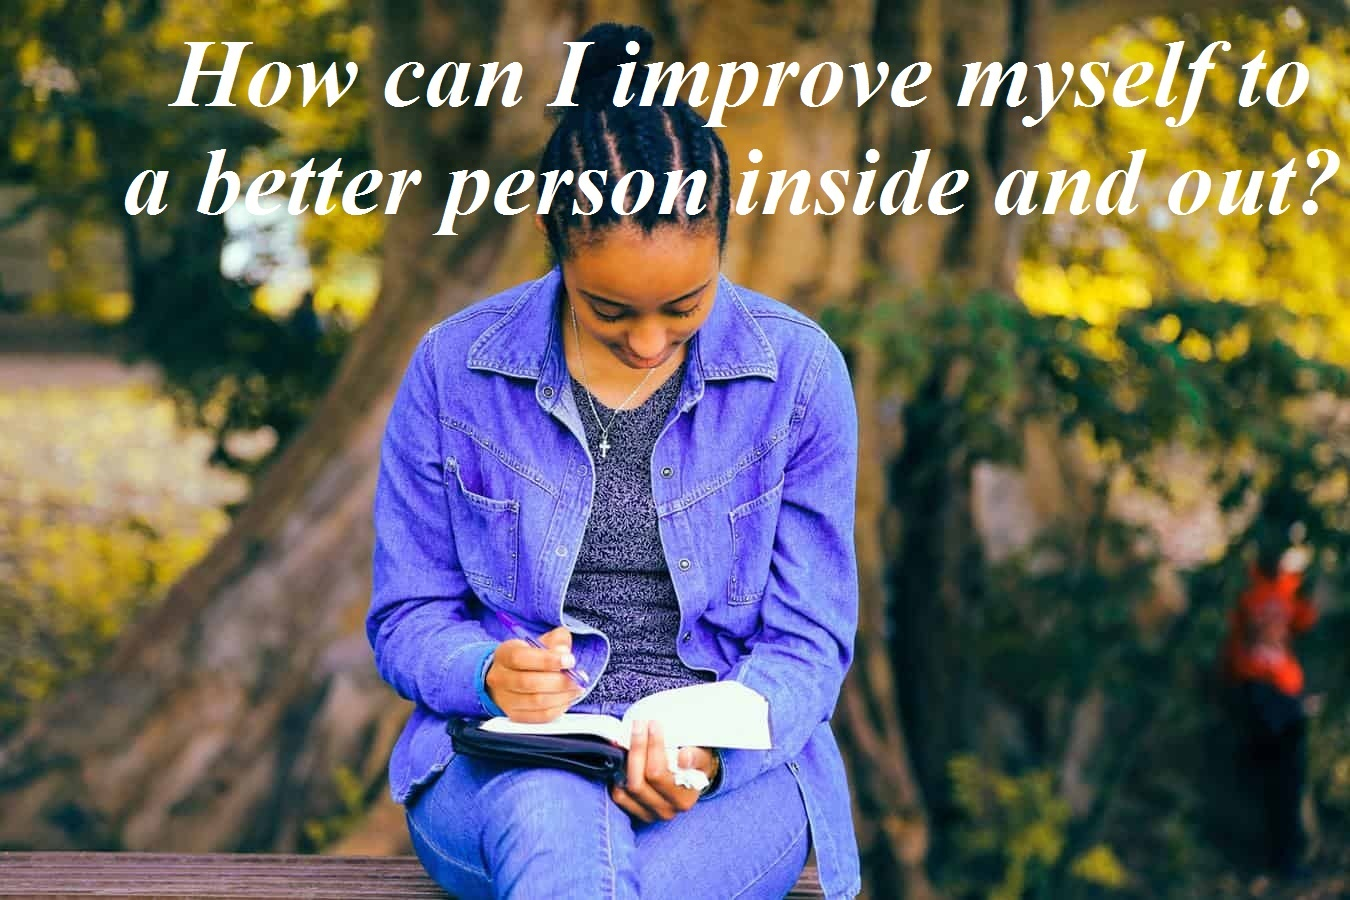 how can I improve myself to a better person inside and out?